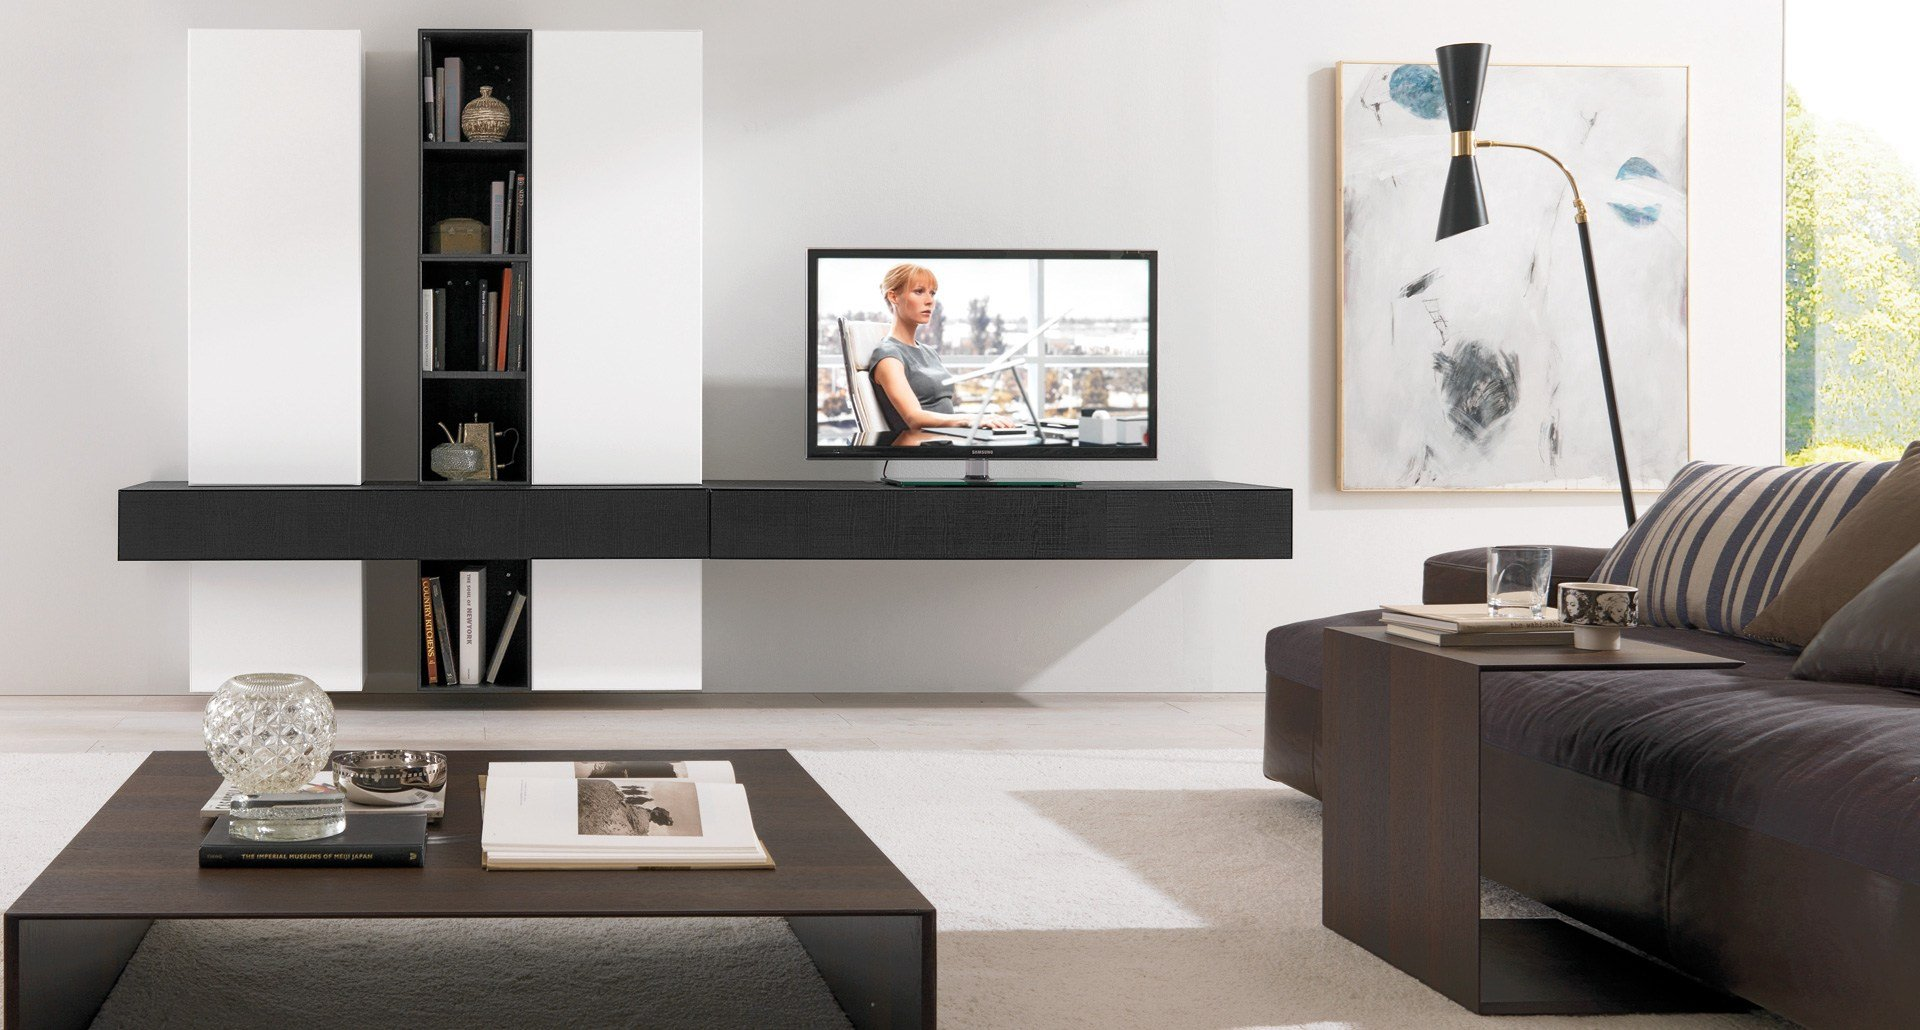 Meuble Support Mural Tv Maison Design Wiblia Com # Amenagement Long Mur Salon Tv